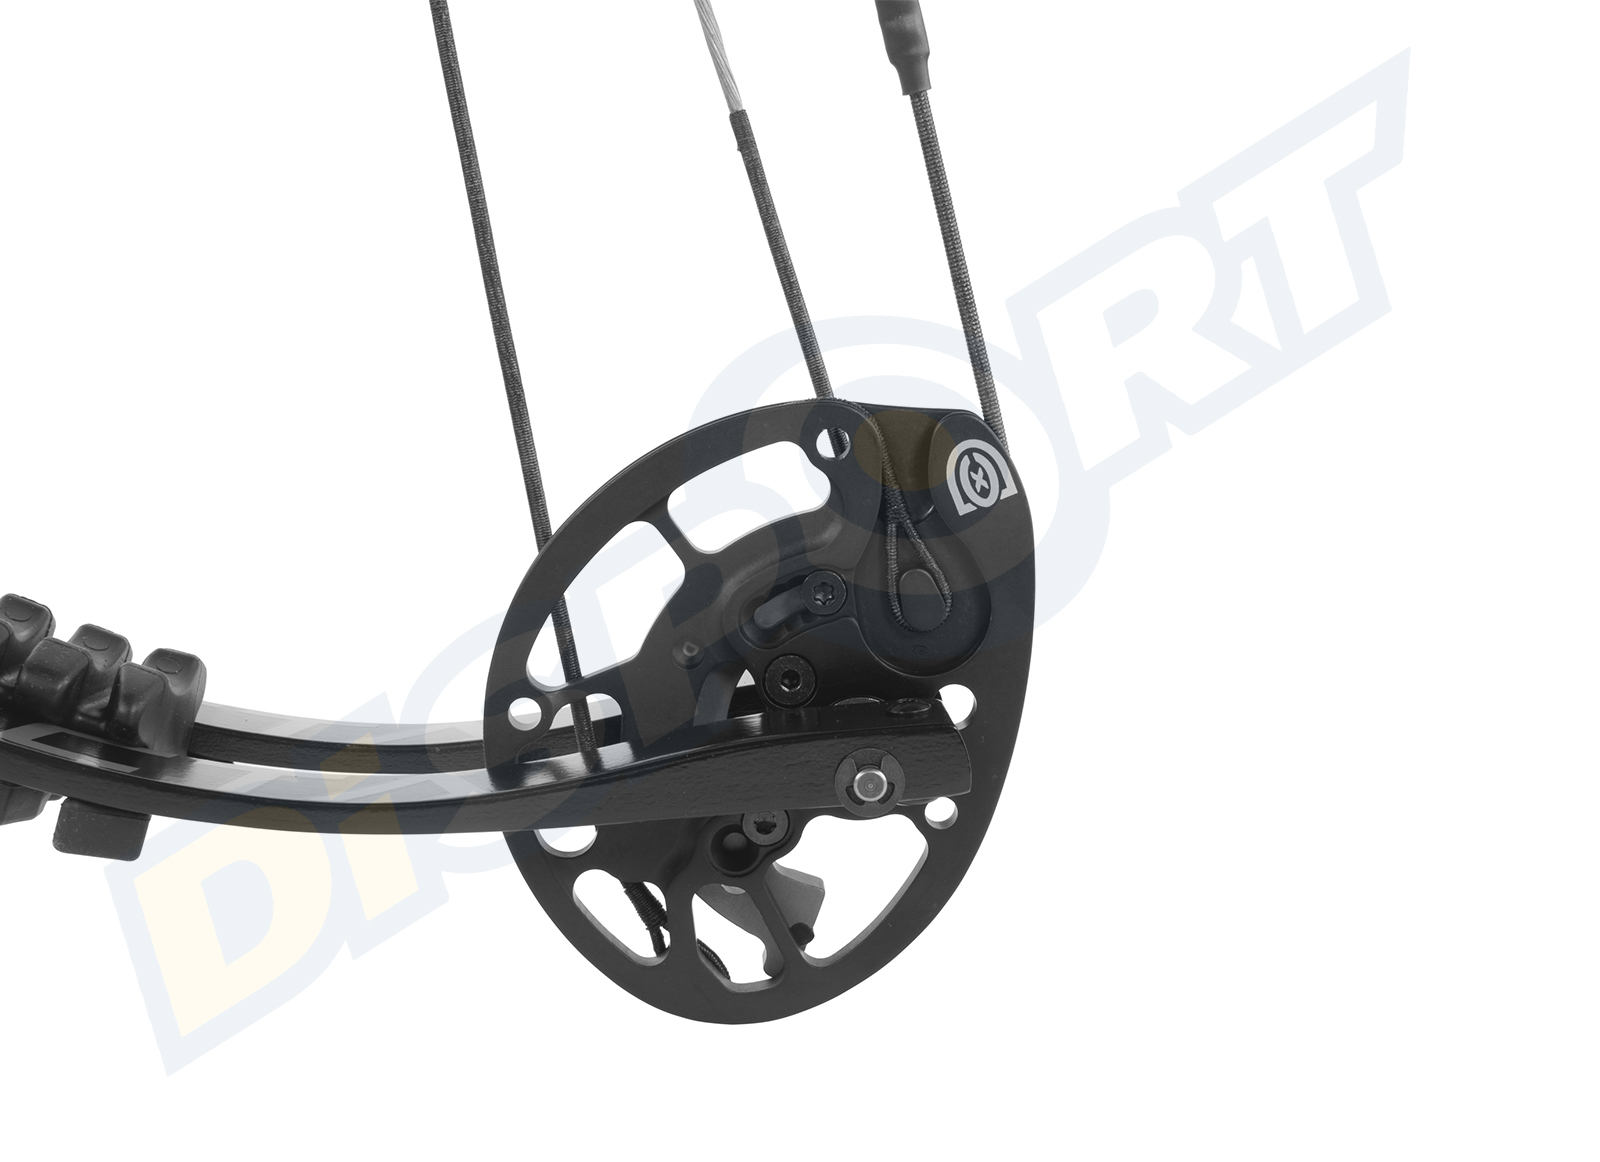 HOYT COMPOUND INVICTA 40 DCX 2020 COLOR